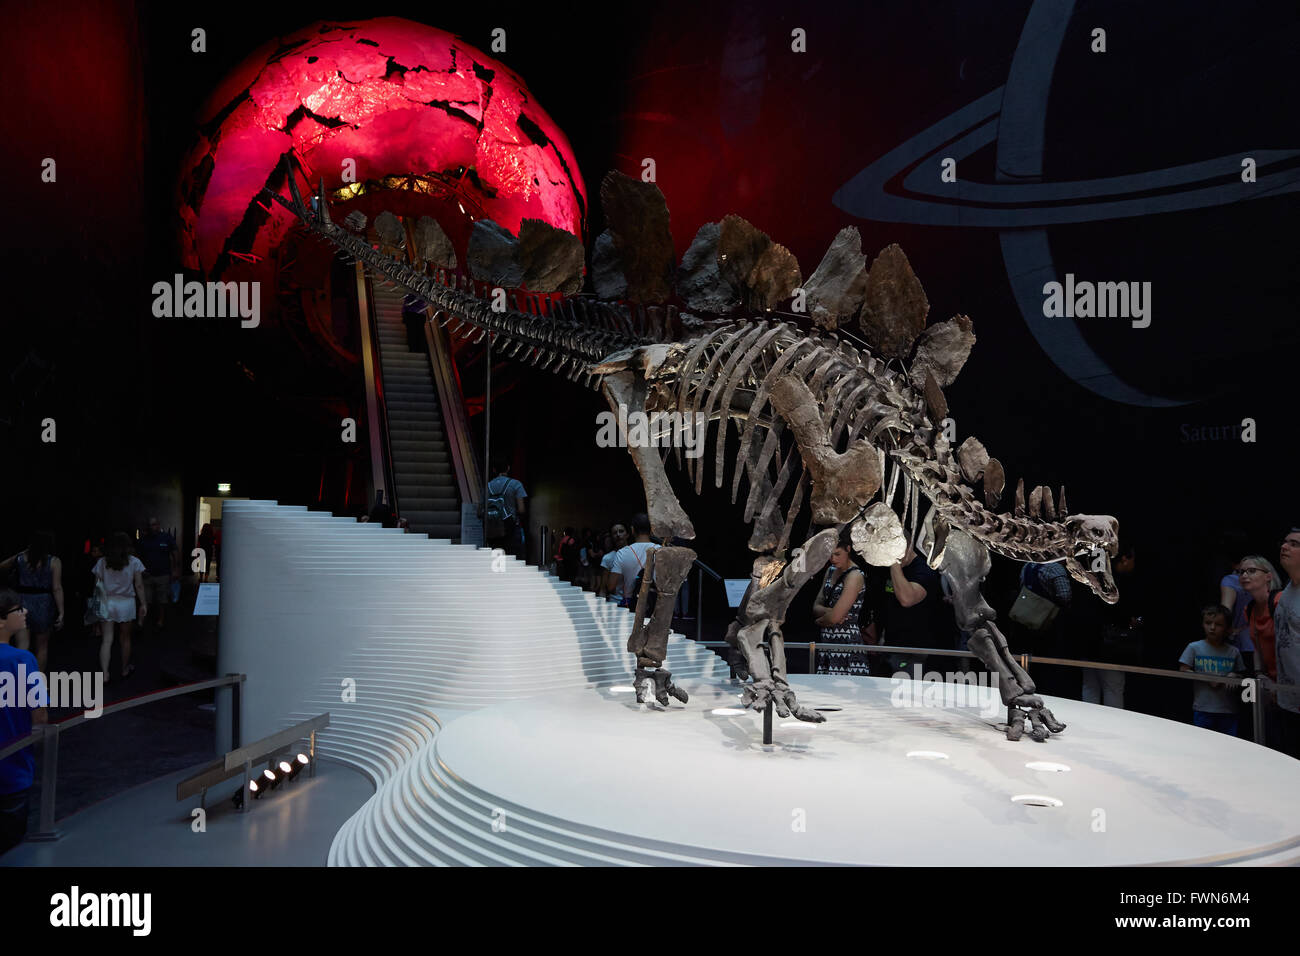 Stegosaurus, dinosaur skeleton in Natural History Museum in London - Stock Image